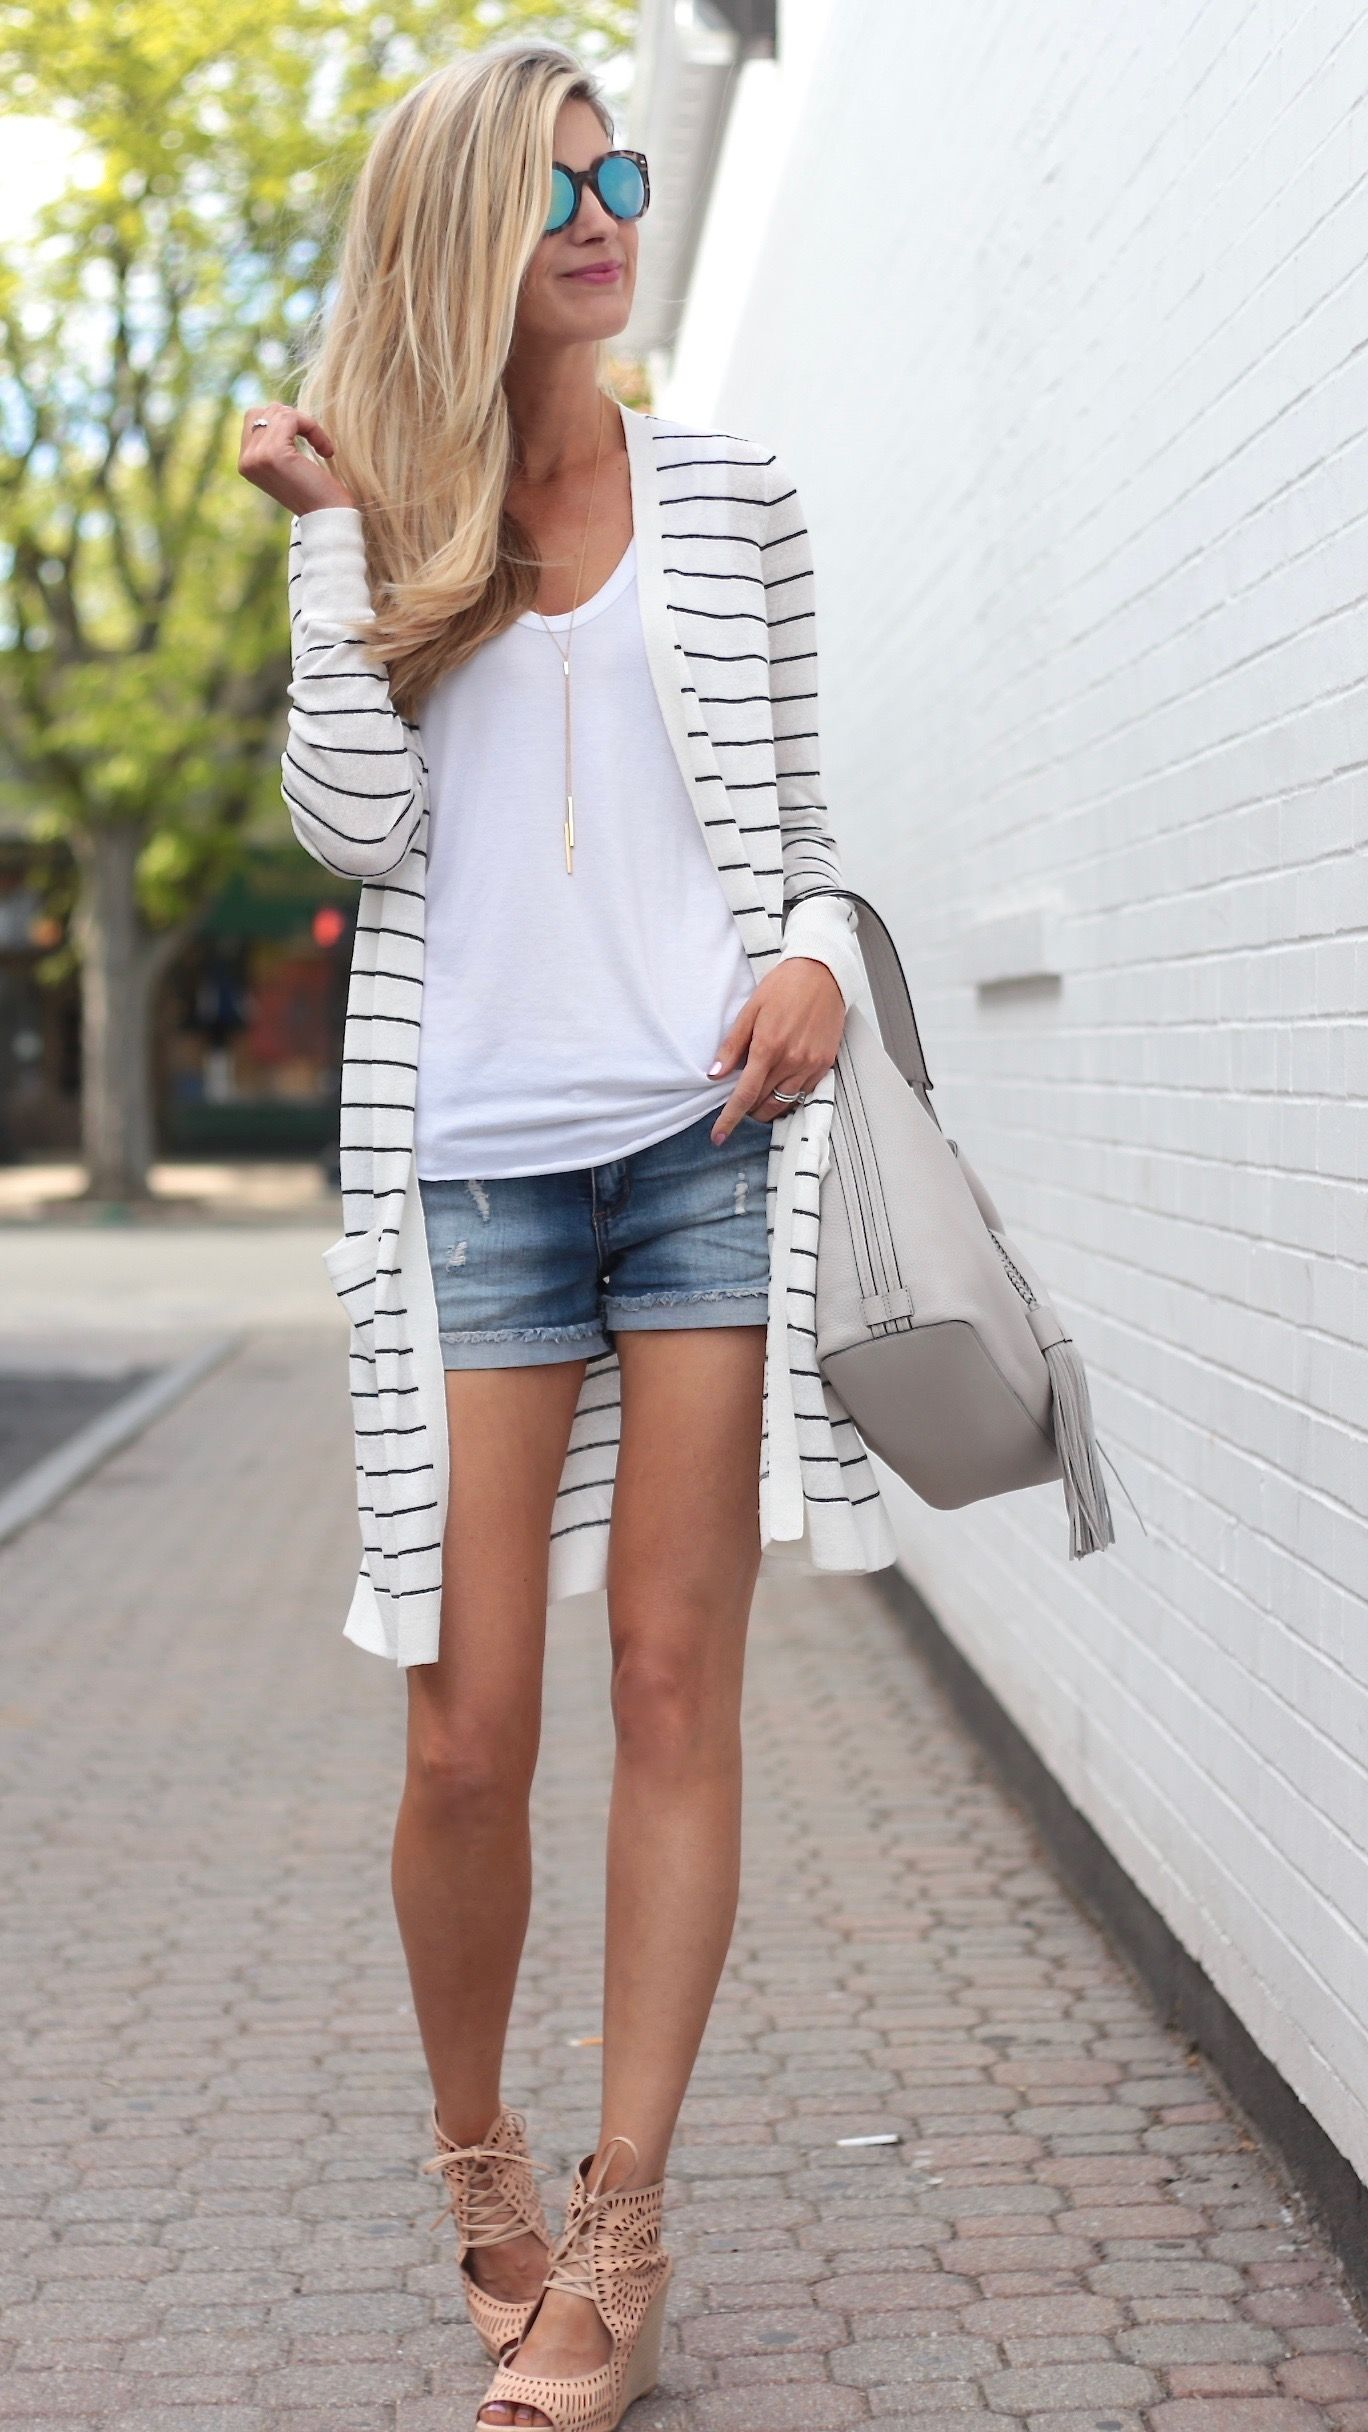 ac5b9bd64f10 summer outfit ideas - striped duster cardigan with denim cutoffs